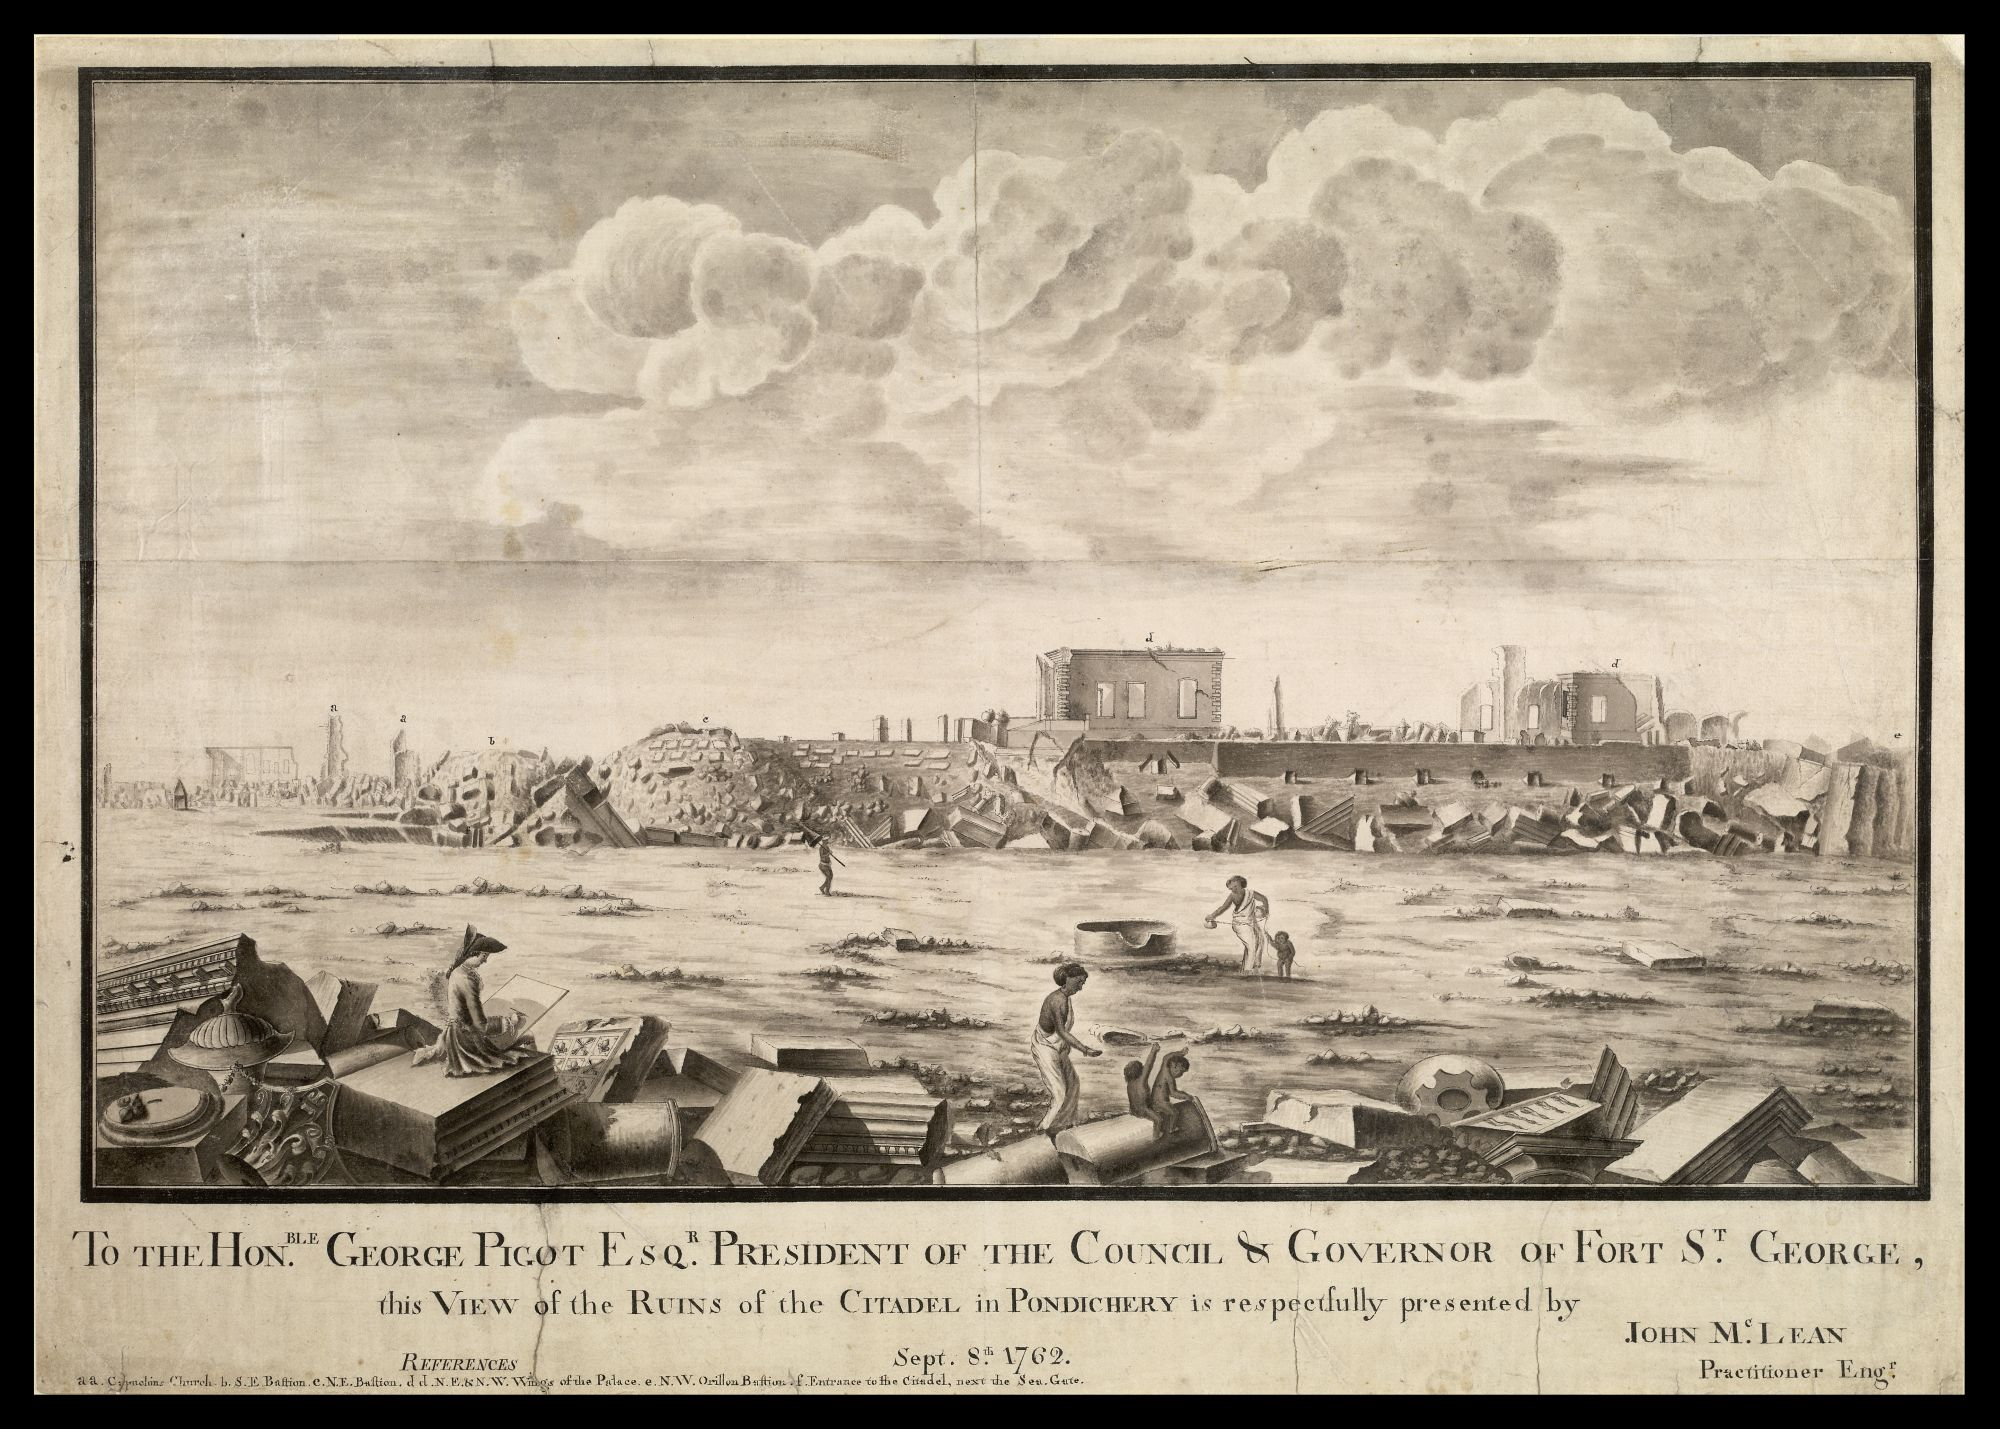 Ruins of the citadel in Pondicherry after the attack by the British by Captain John McClean; Captain McClean draws the scene in the foreground